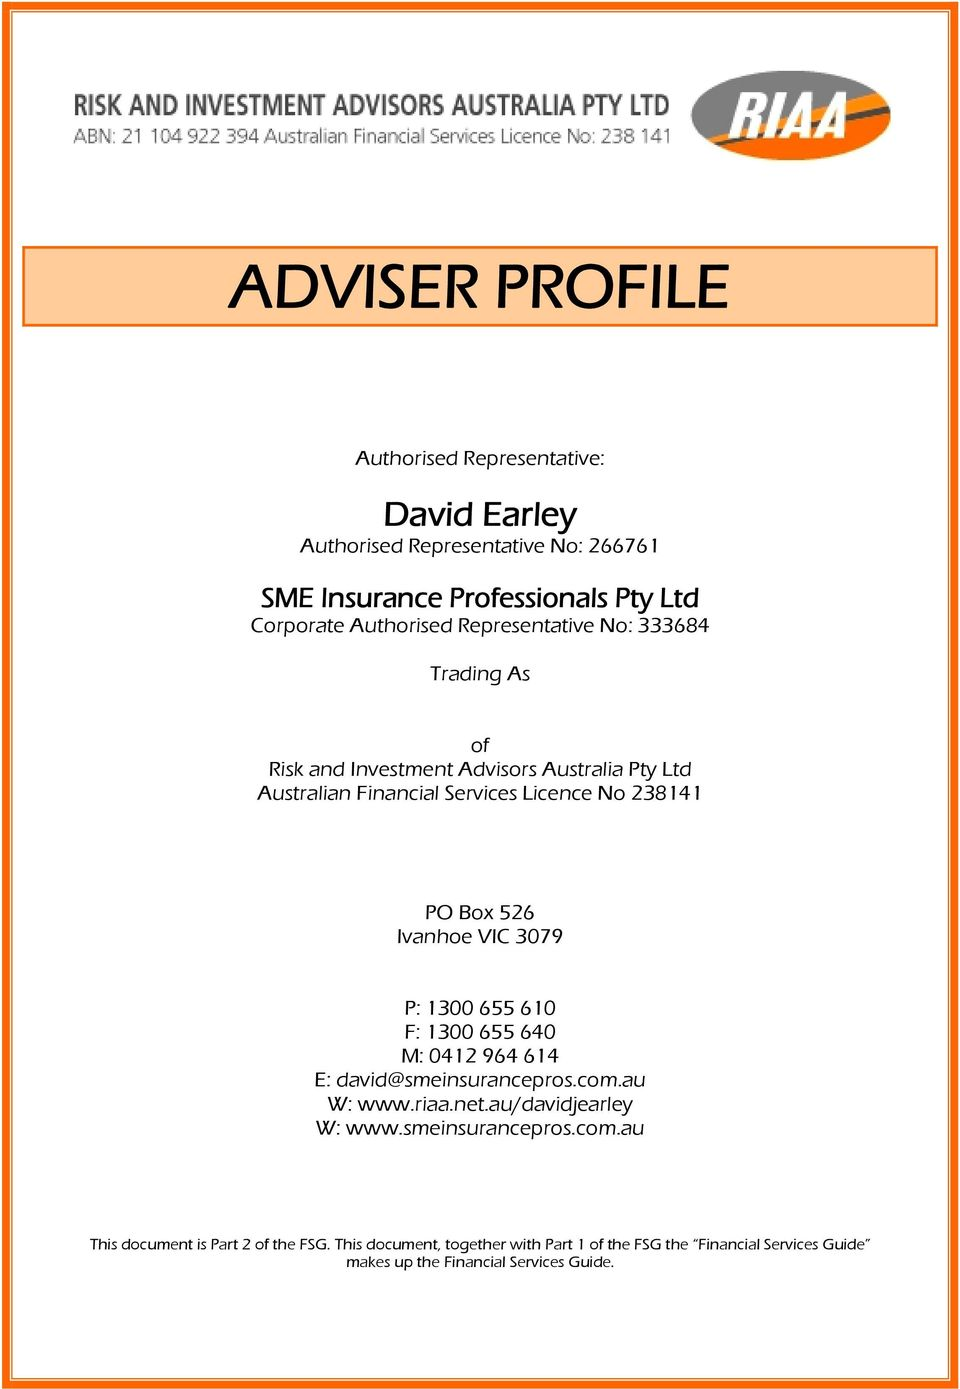 Ivanhoe VIC 3079 P: 300 655 60 F: 300 655 640 M: 04 964 64 E: david@smeinsurancepros.com.au W: www.riaa.net.au/davidjearley W: www.smeinsurancepros.com.au This document is Part of the FSG.